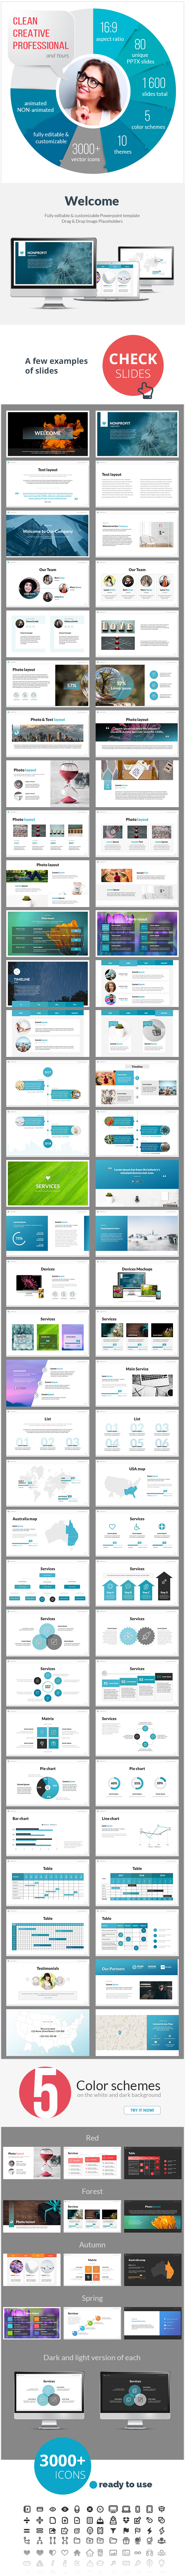 Multipurpose Nonprofit PowerPoint Presentation Template - PowerPoint Templates Presentation Templates